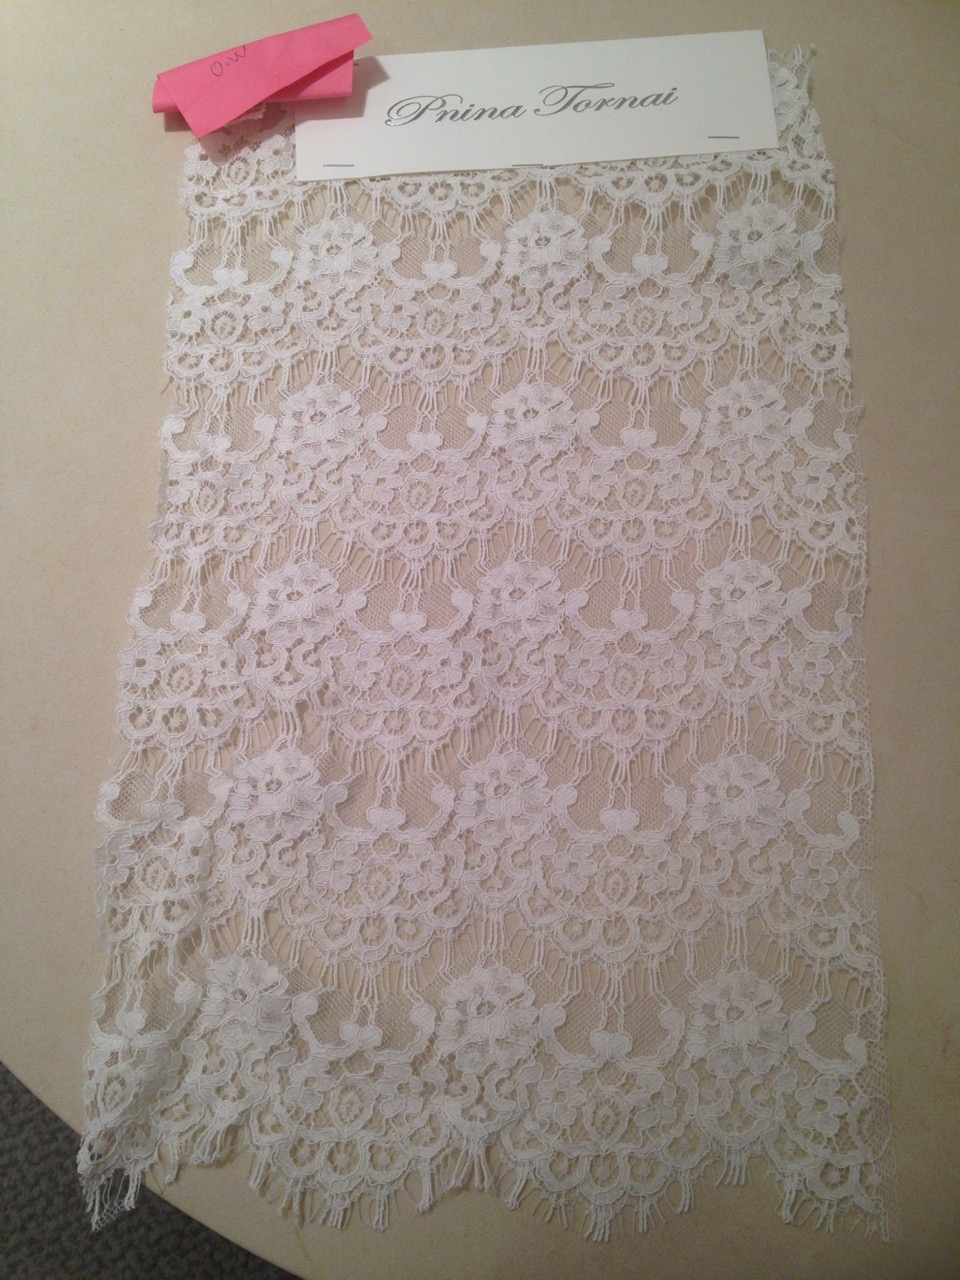 Cstom Swatch of Lace sent from P'Nina Tornai's office.